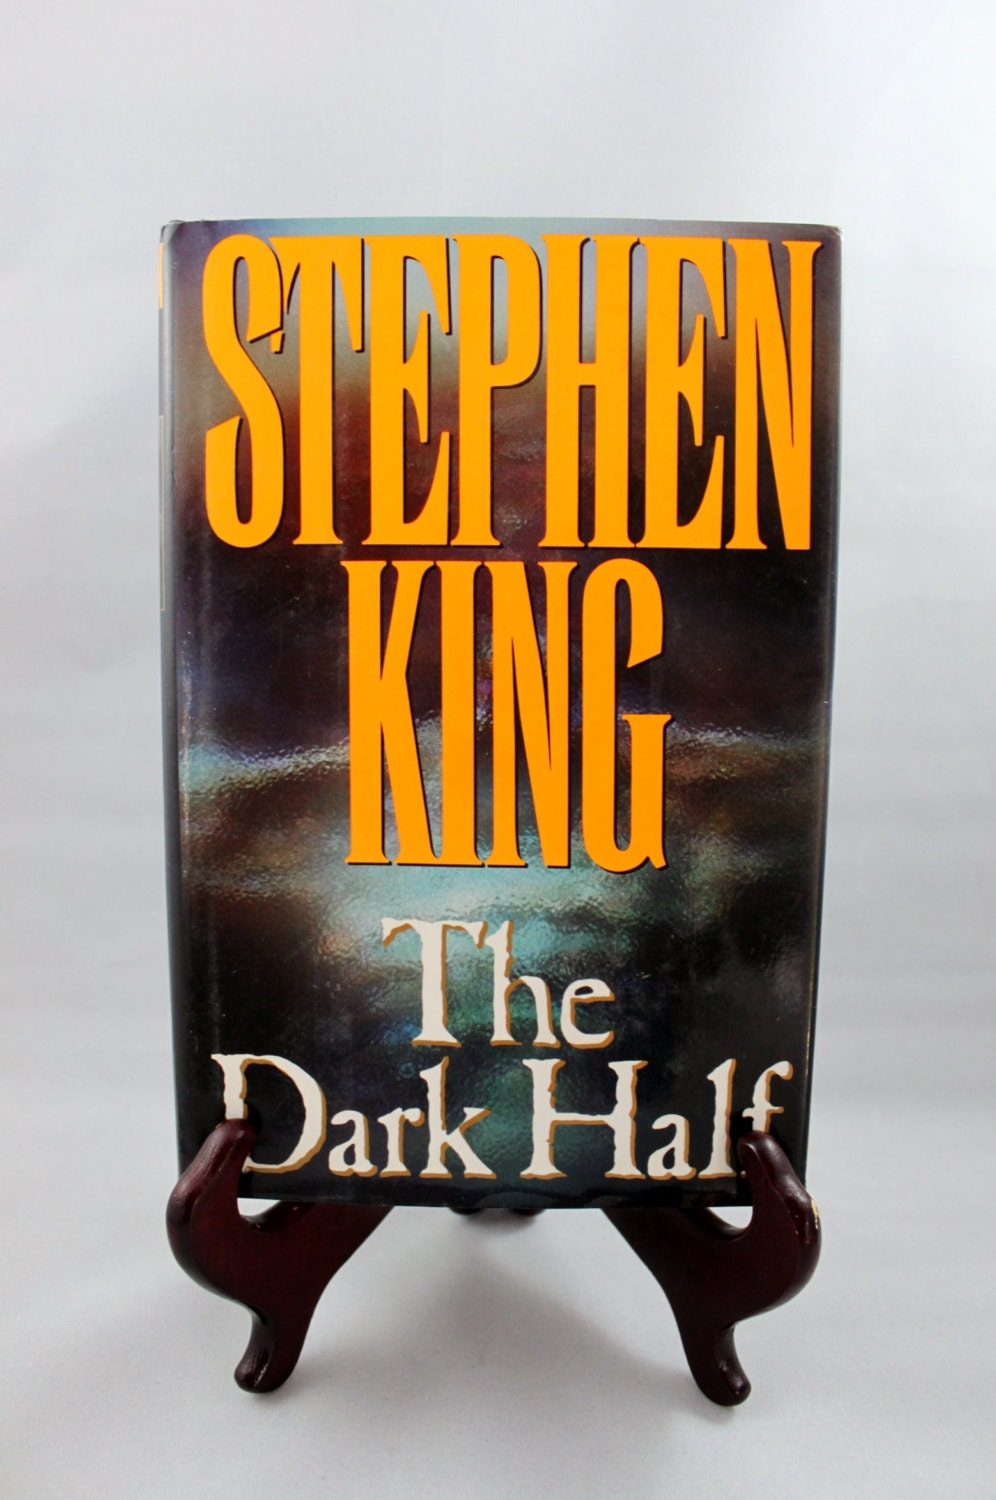 an analysis of the novel the dark half by stephen king The dark half - ebook written by stephen king read this book using google play books app on your pc, android, ios devices download for offline reading, highlight, bookmark or take notes while you read the dark half.